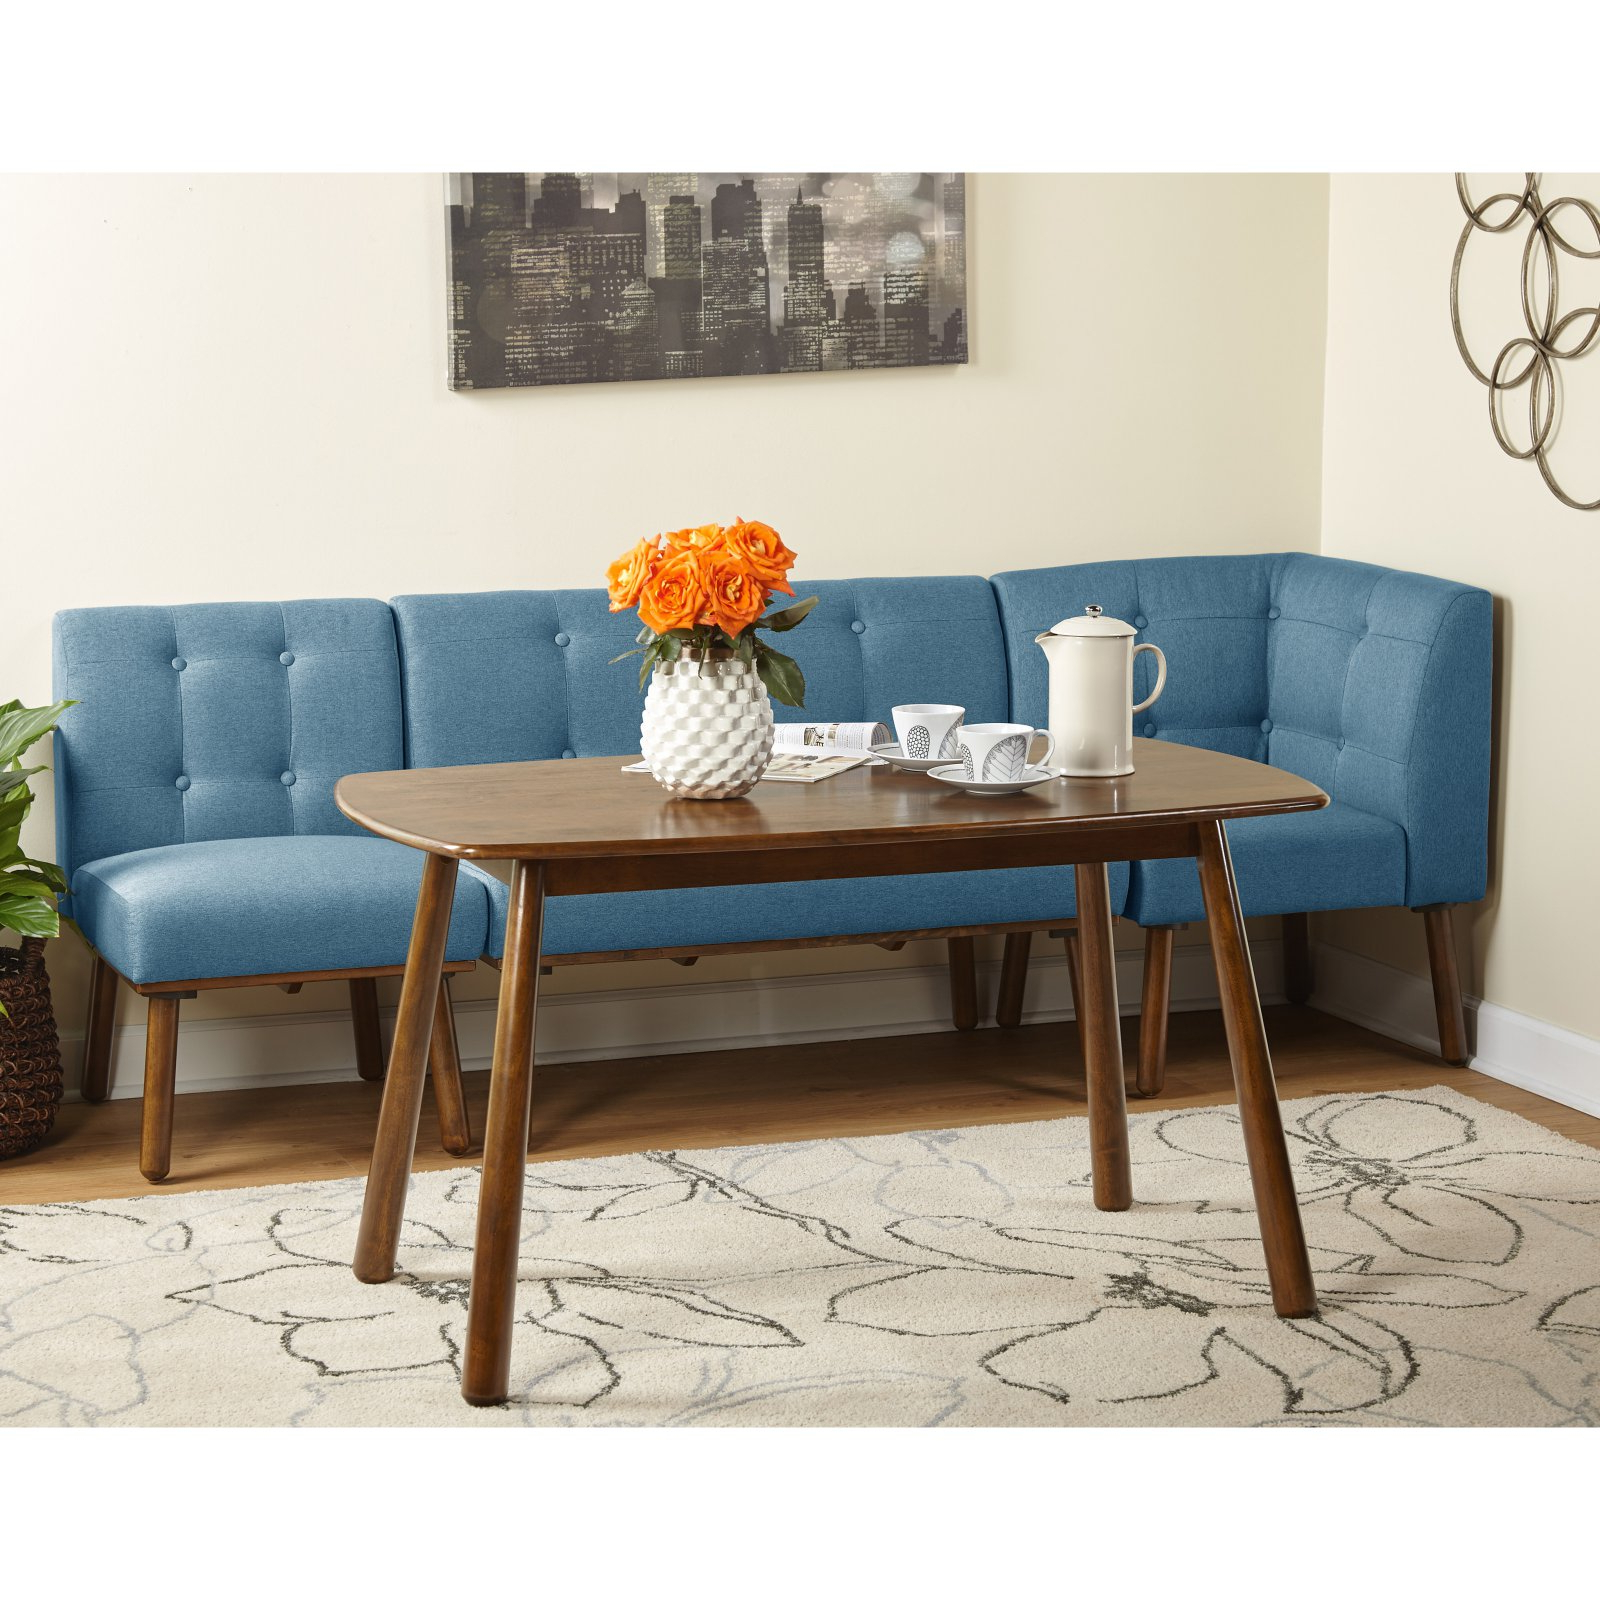 Mukai 5 Piece Dining Sets Regarding Fashionable Target Marketing Systems Playmate 4 Piece Dining Table Set Blue (View 11 of 25)